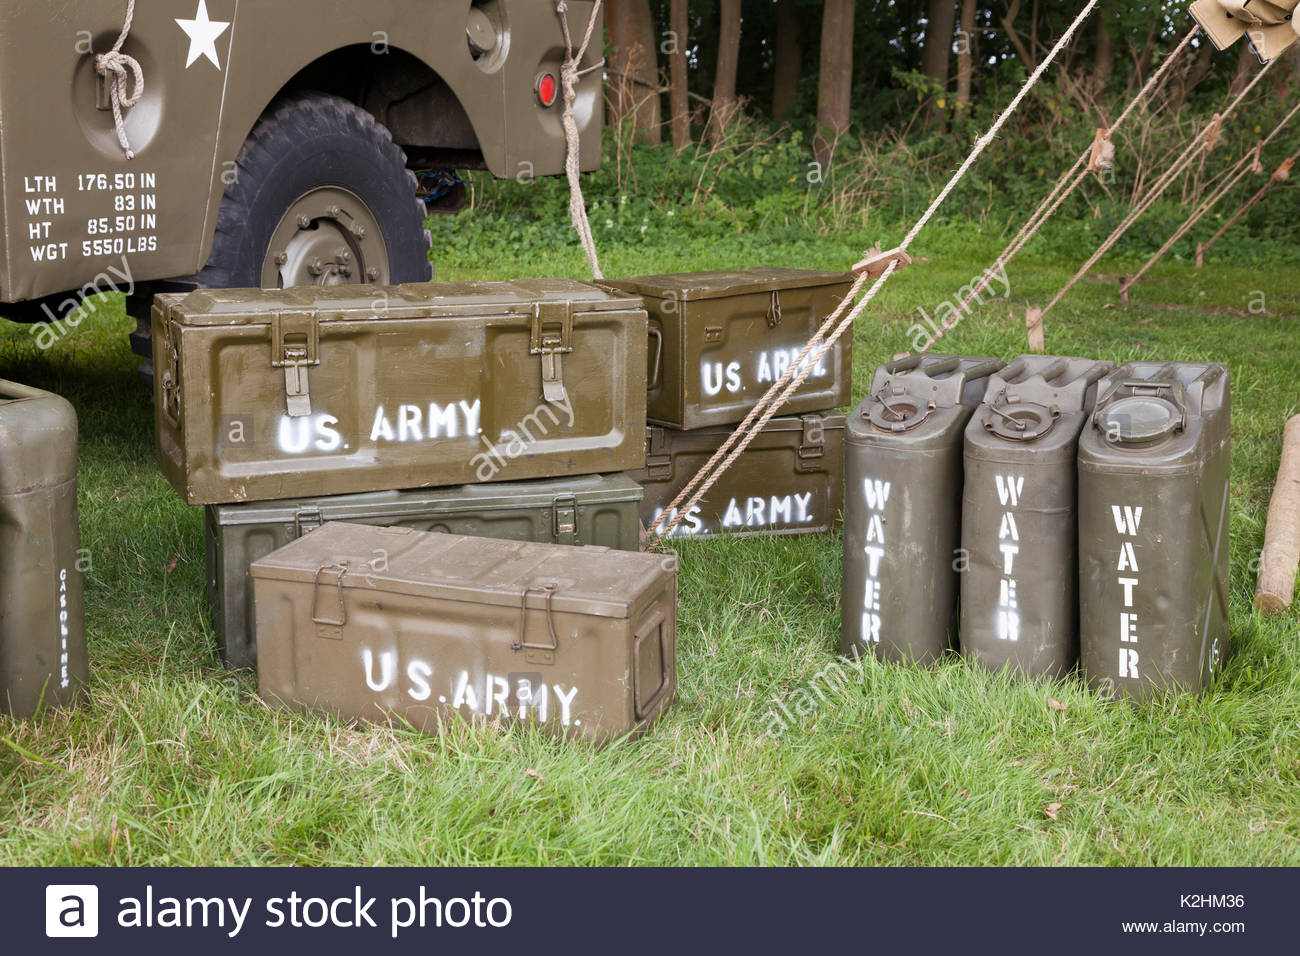 World War Two Re-enactment - Containers of army supplies - Stock Image